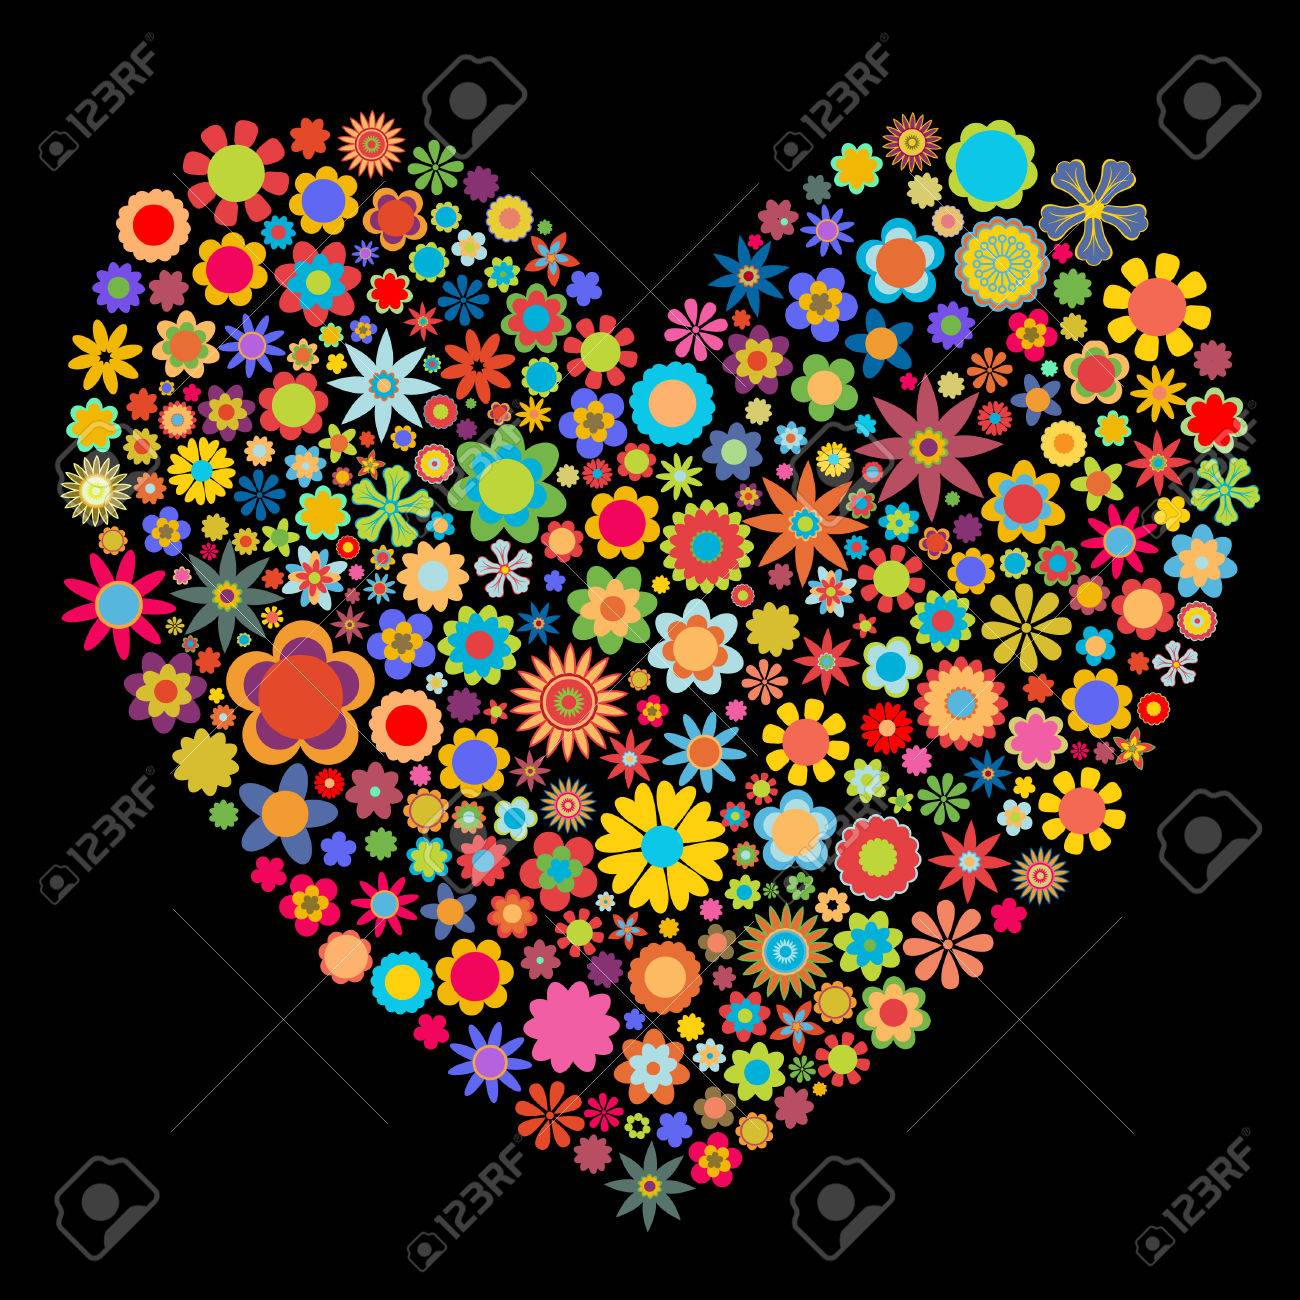 Vector illustration of heart  pattern made up of flower shapeson the black  background. Good  for Valentine Cards. Stock Vector - 3943852